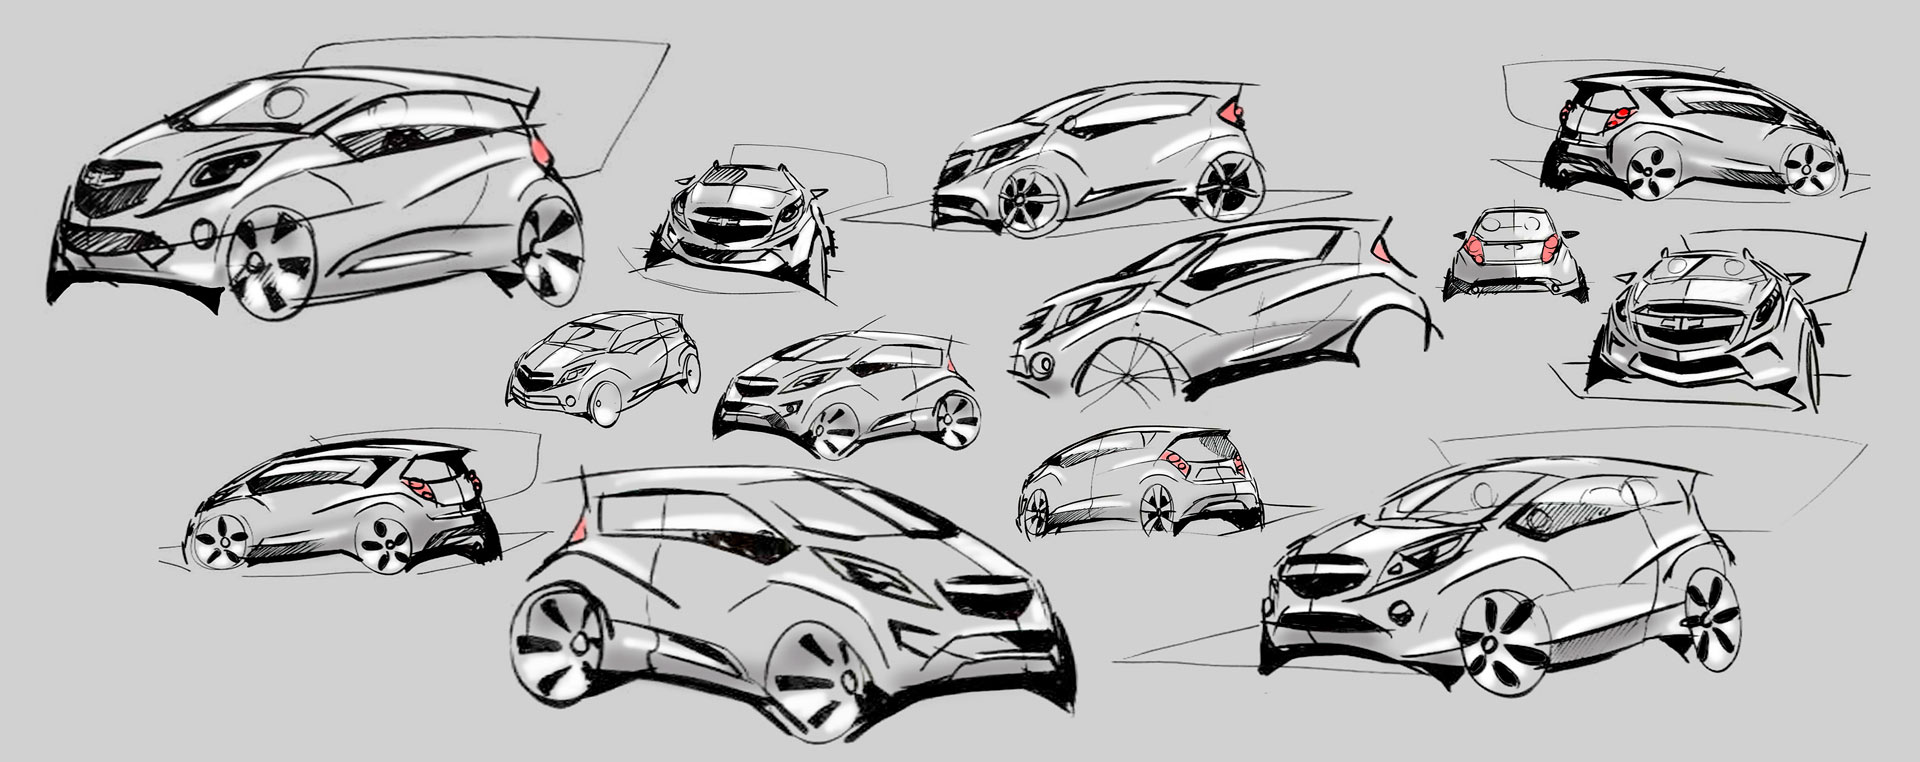 Chevrolet Spark Design Sketches - Car Body Design